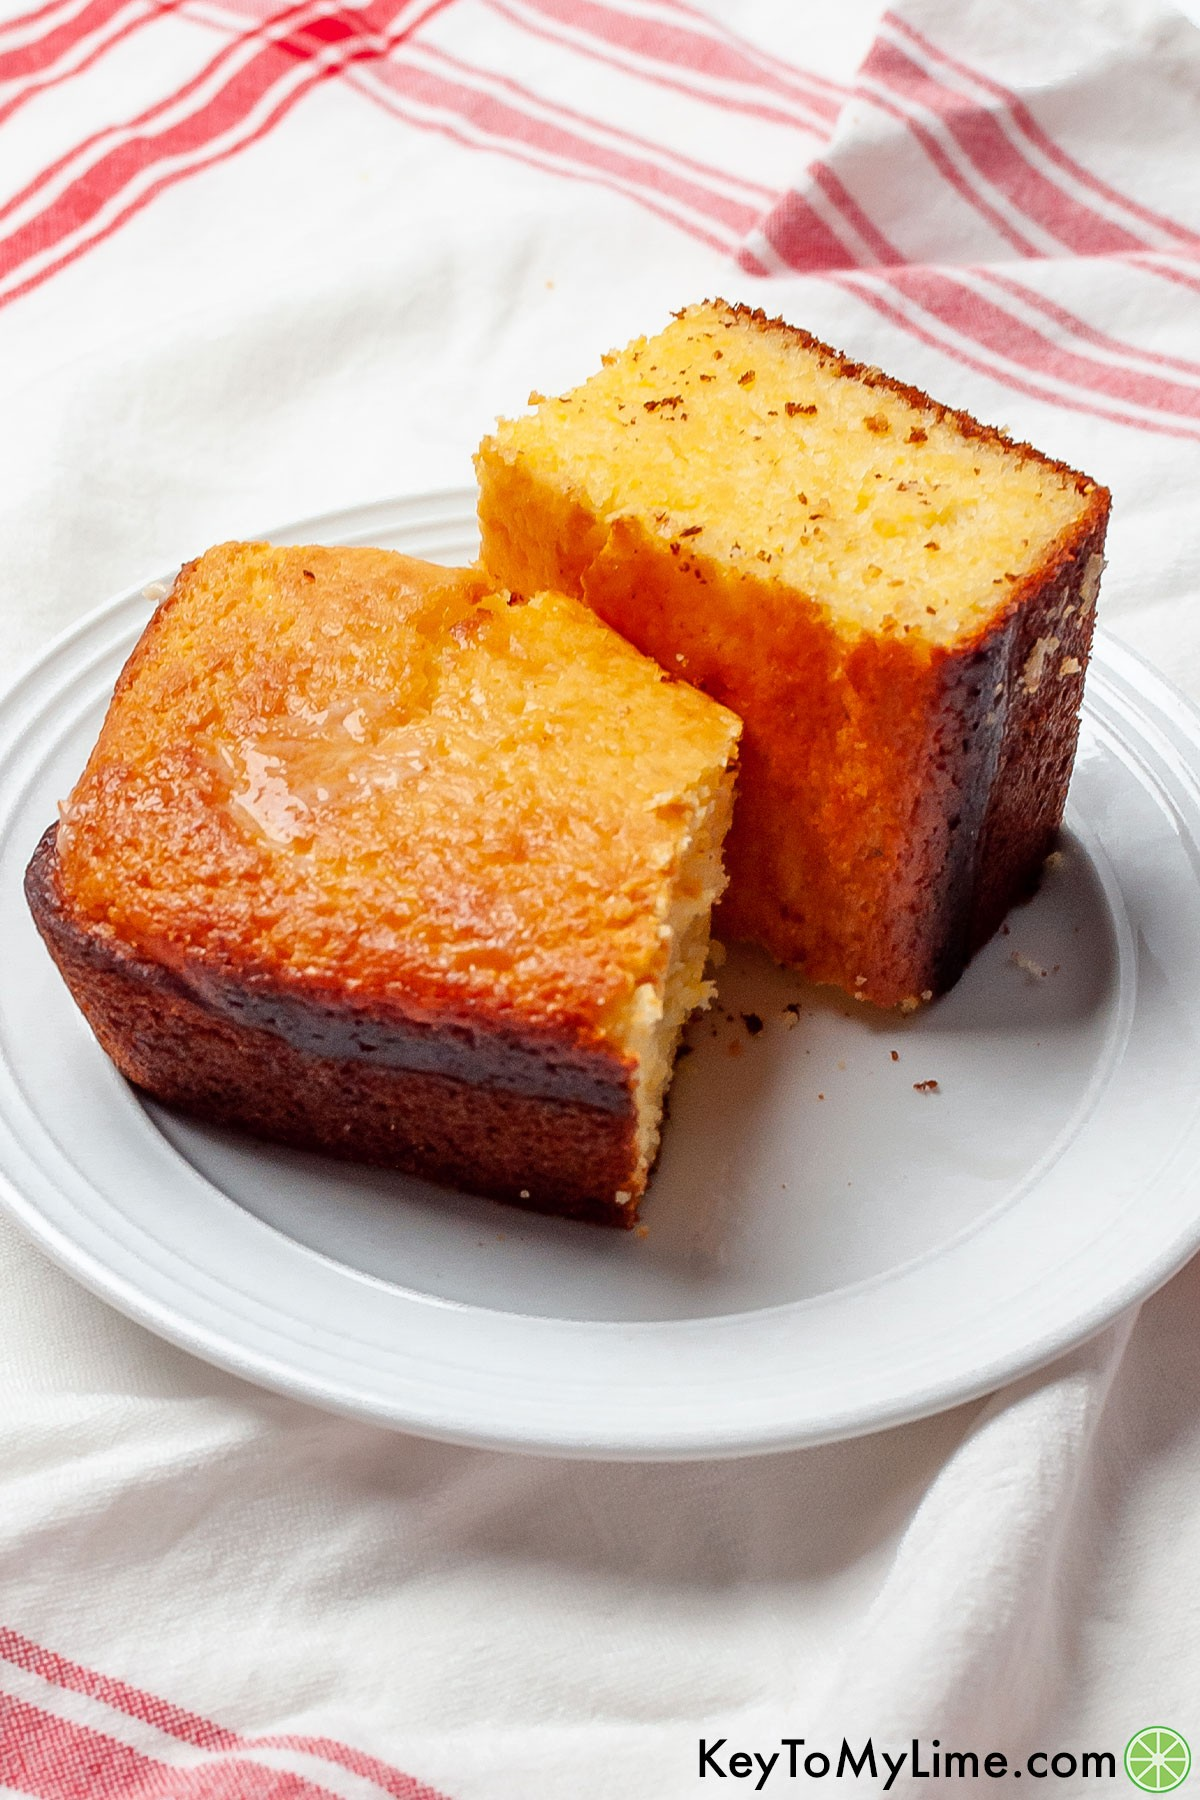 A white plate with two pieces of Jiffy cornbread.